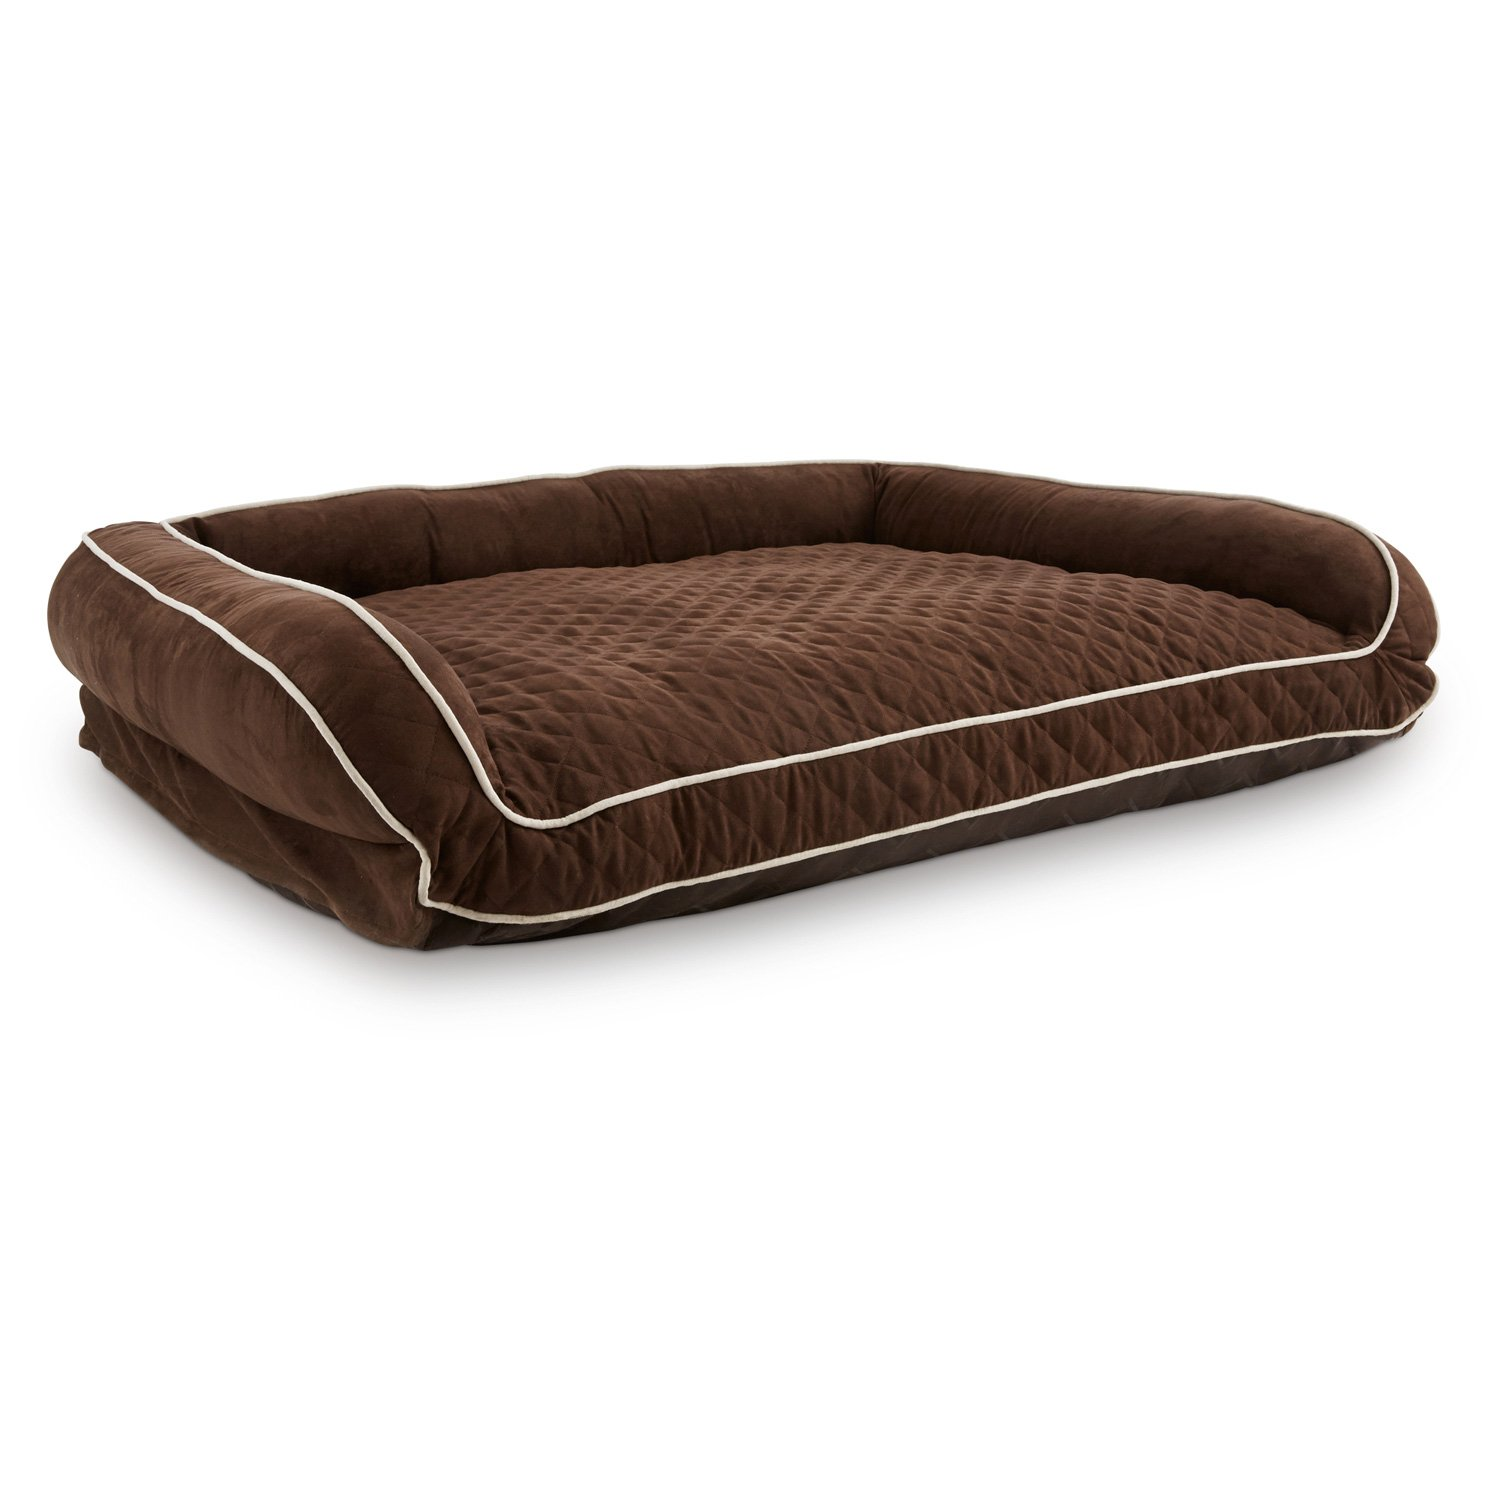 "Memory Foam Brown Couch Dog Bed 48"" L X 36"" W X 10"" H"